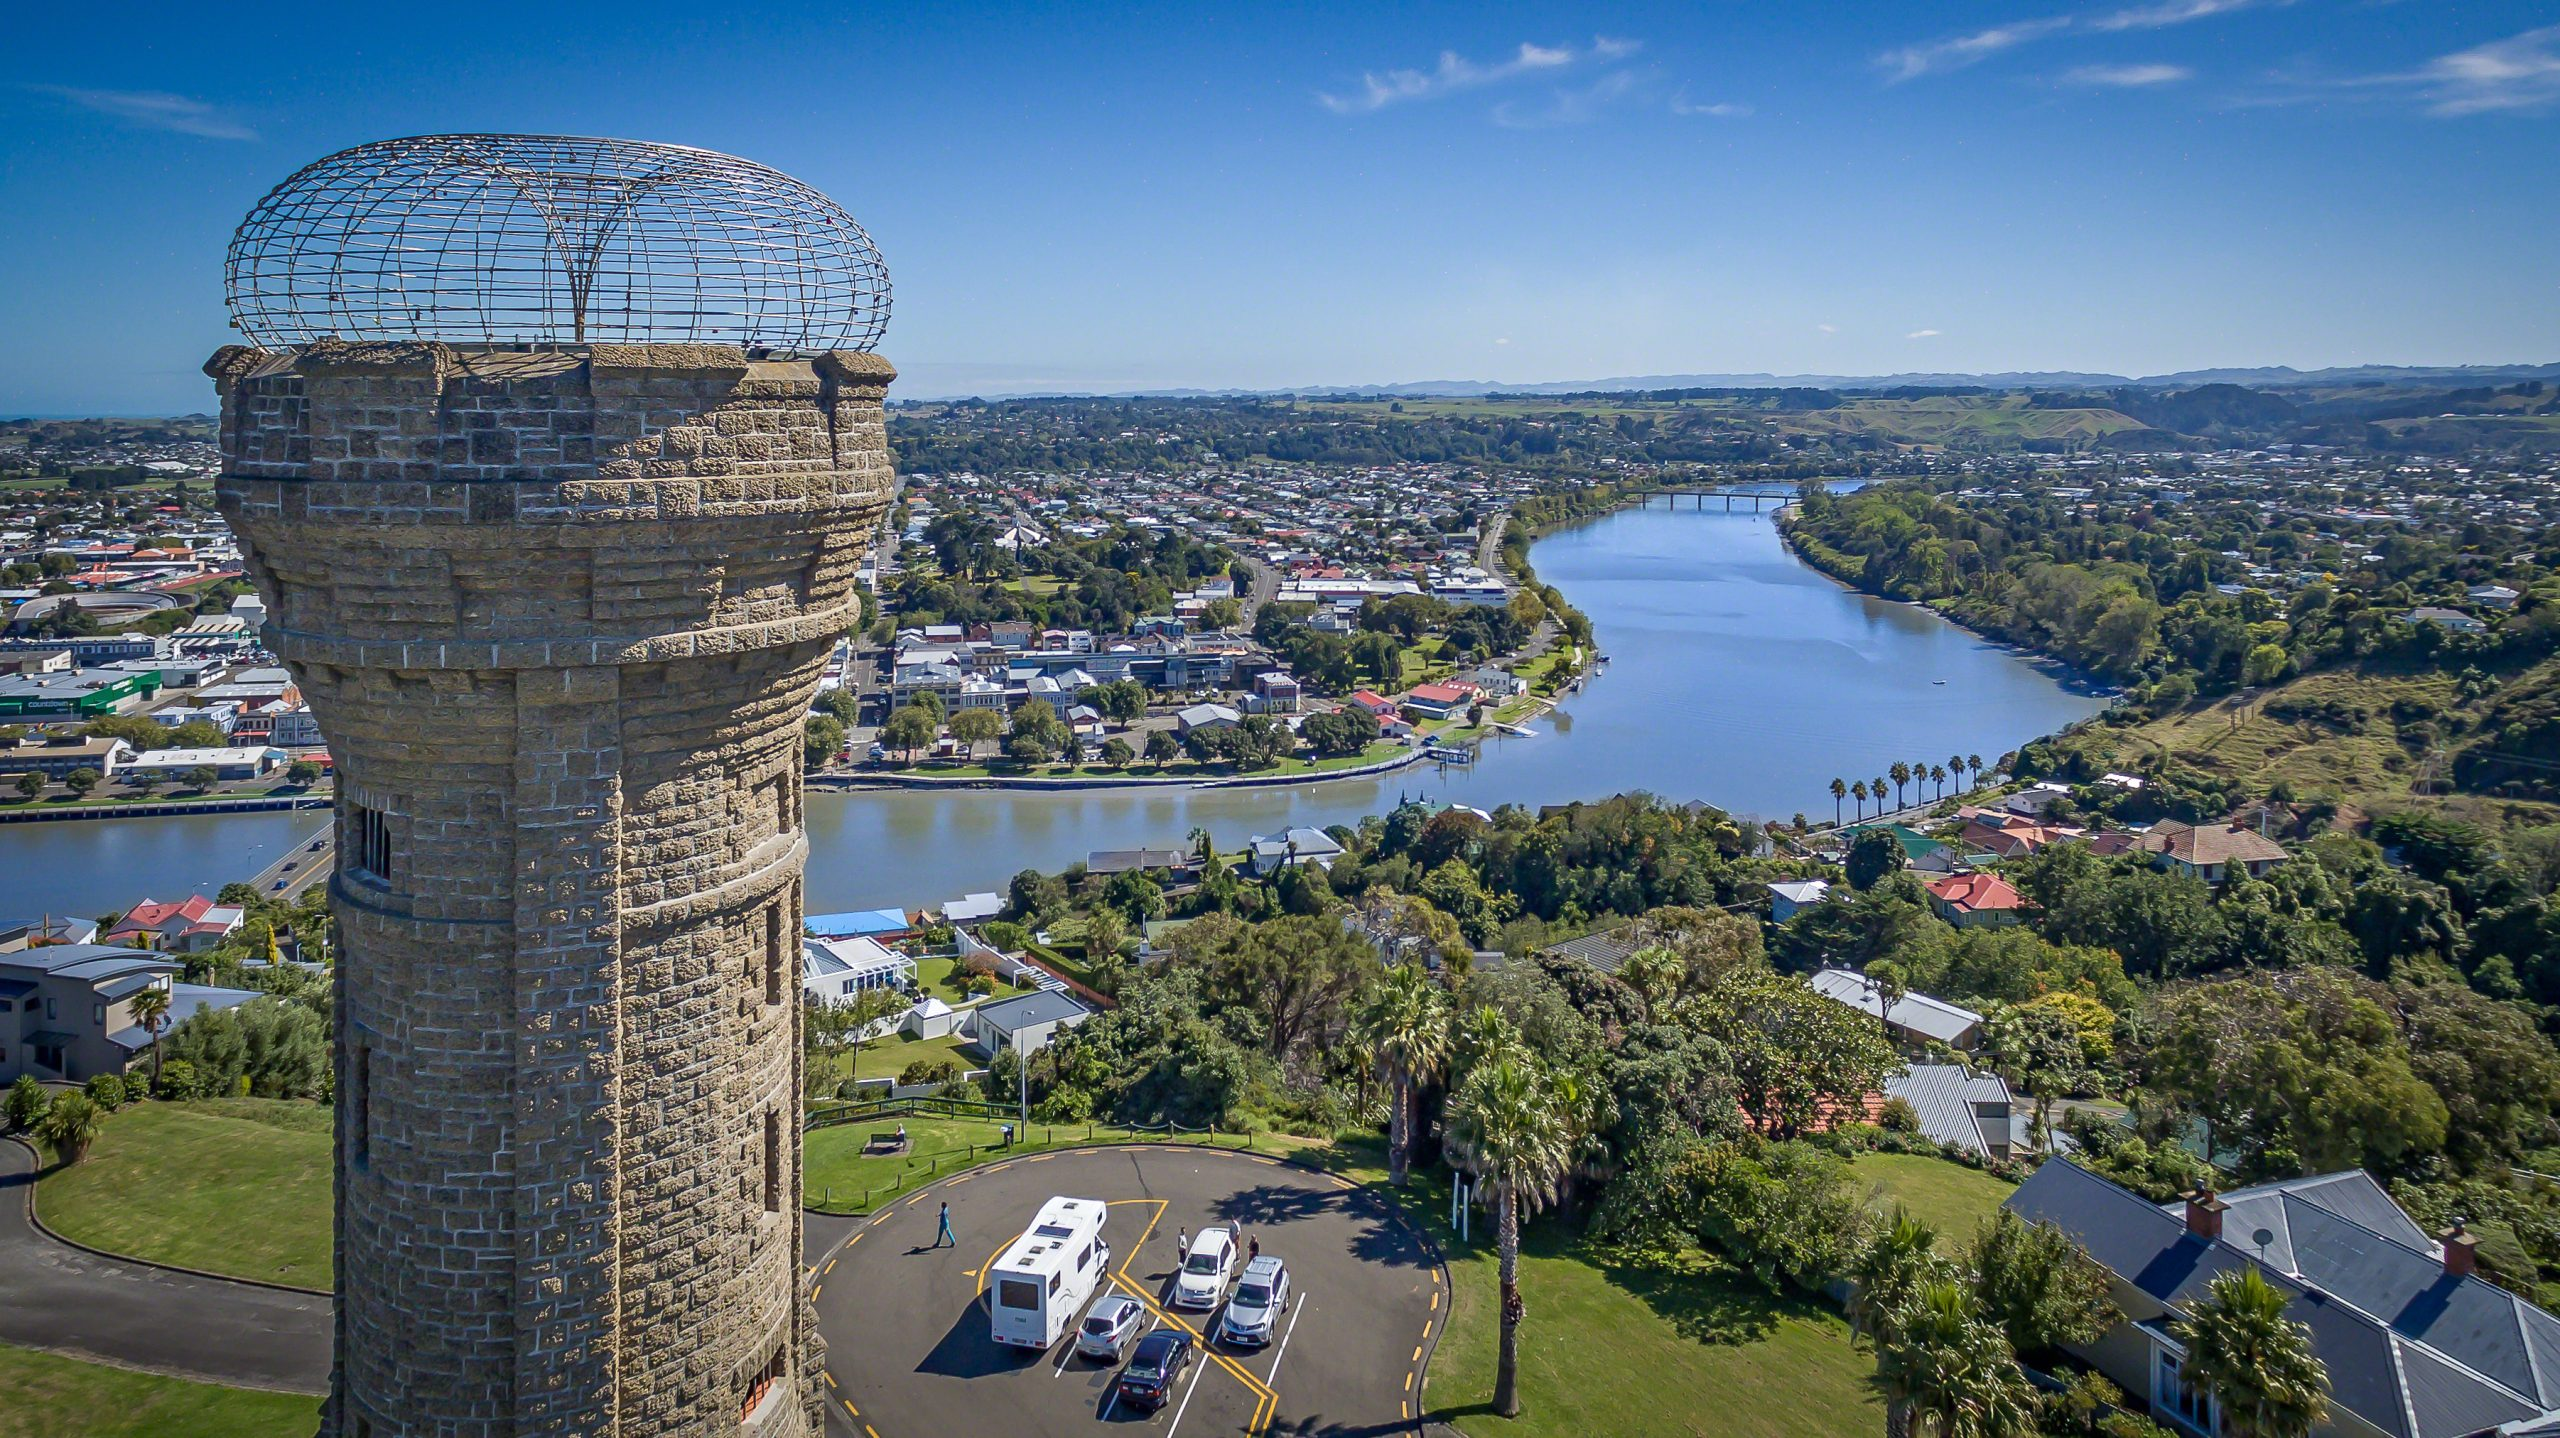 View of tower, river and city of Whanganui